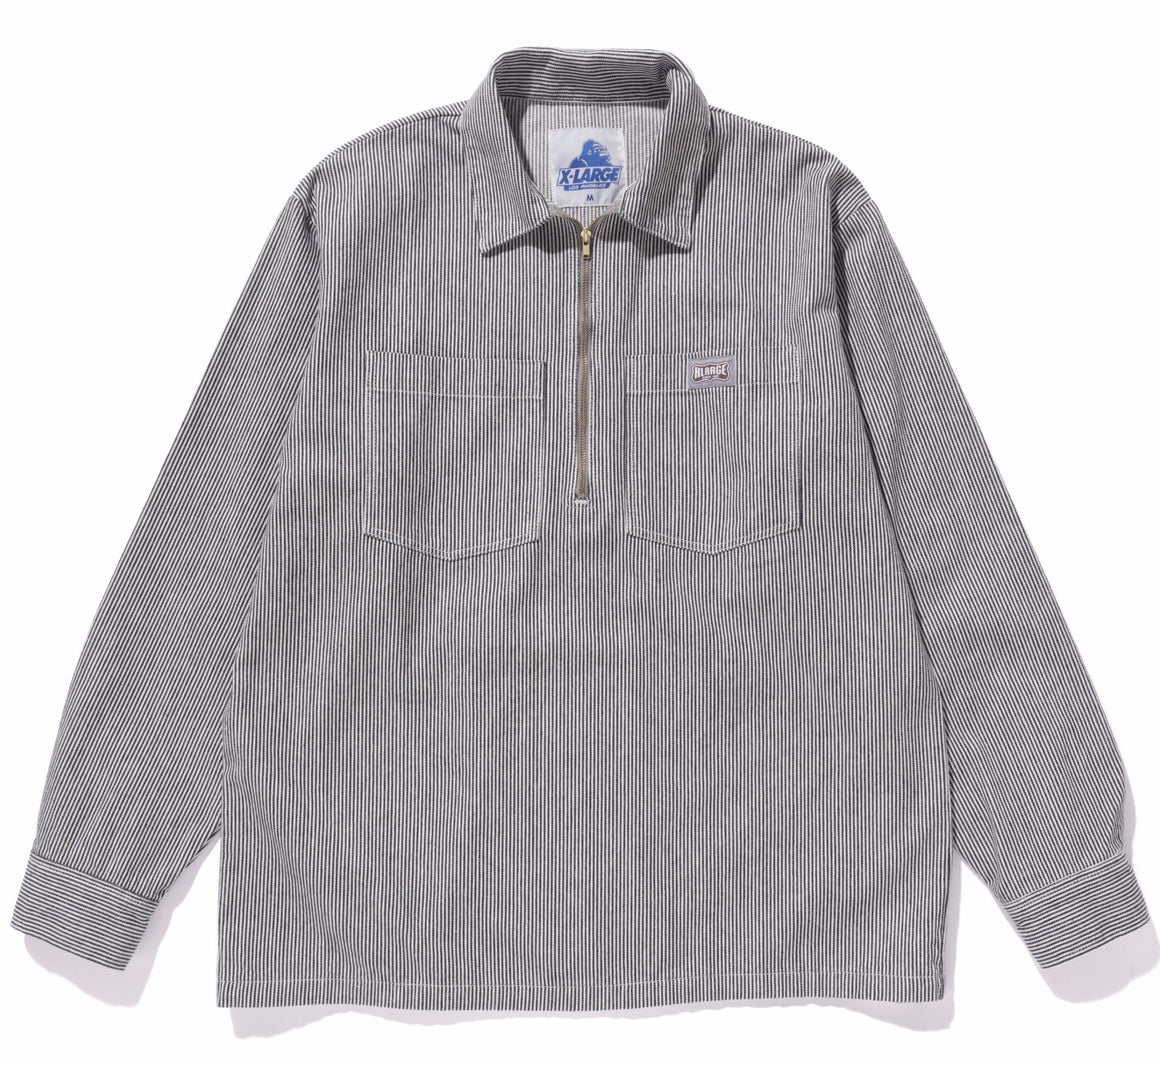 HALF ZIPPED LS WORKSHIRT - X-Large Clothing